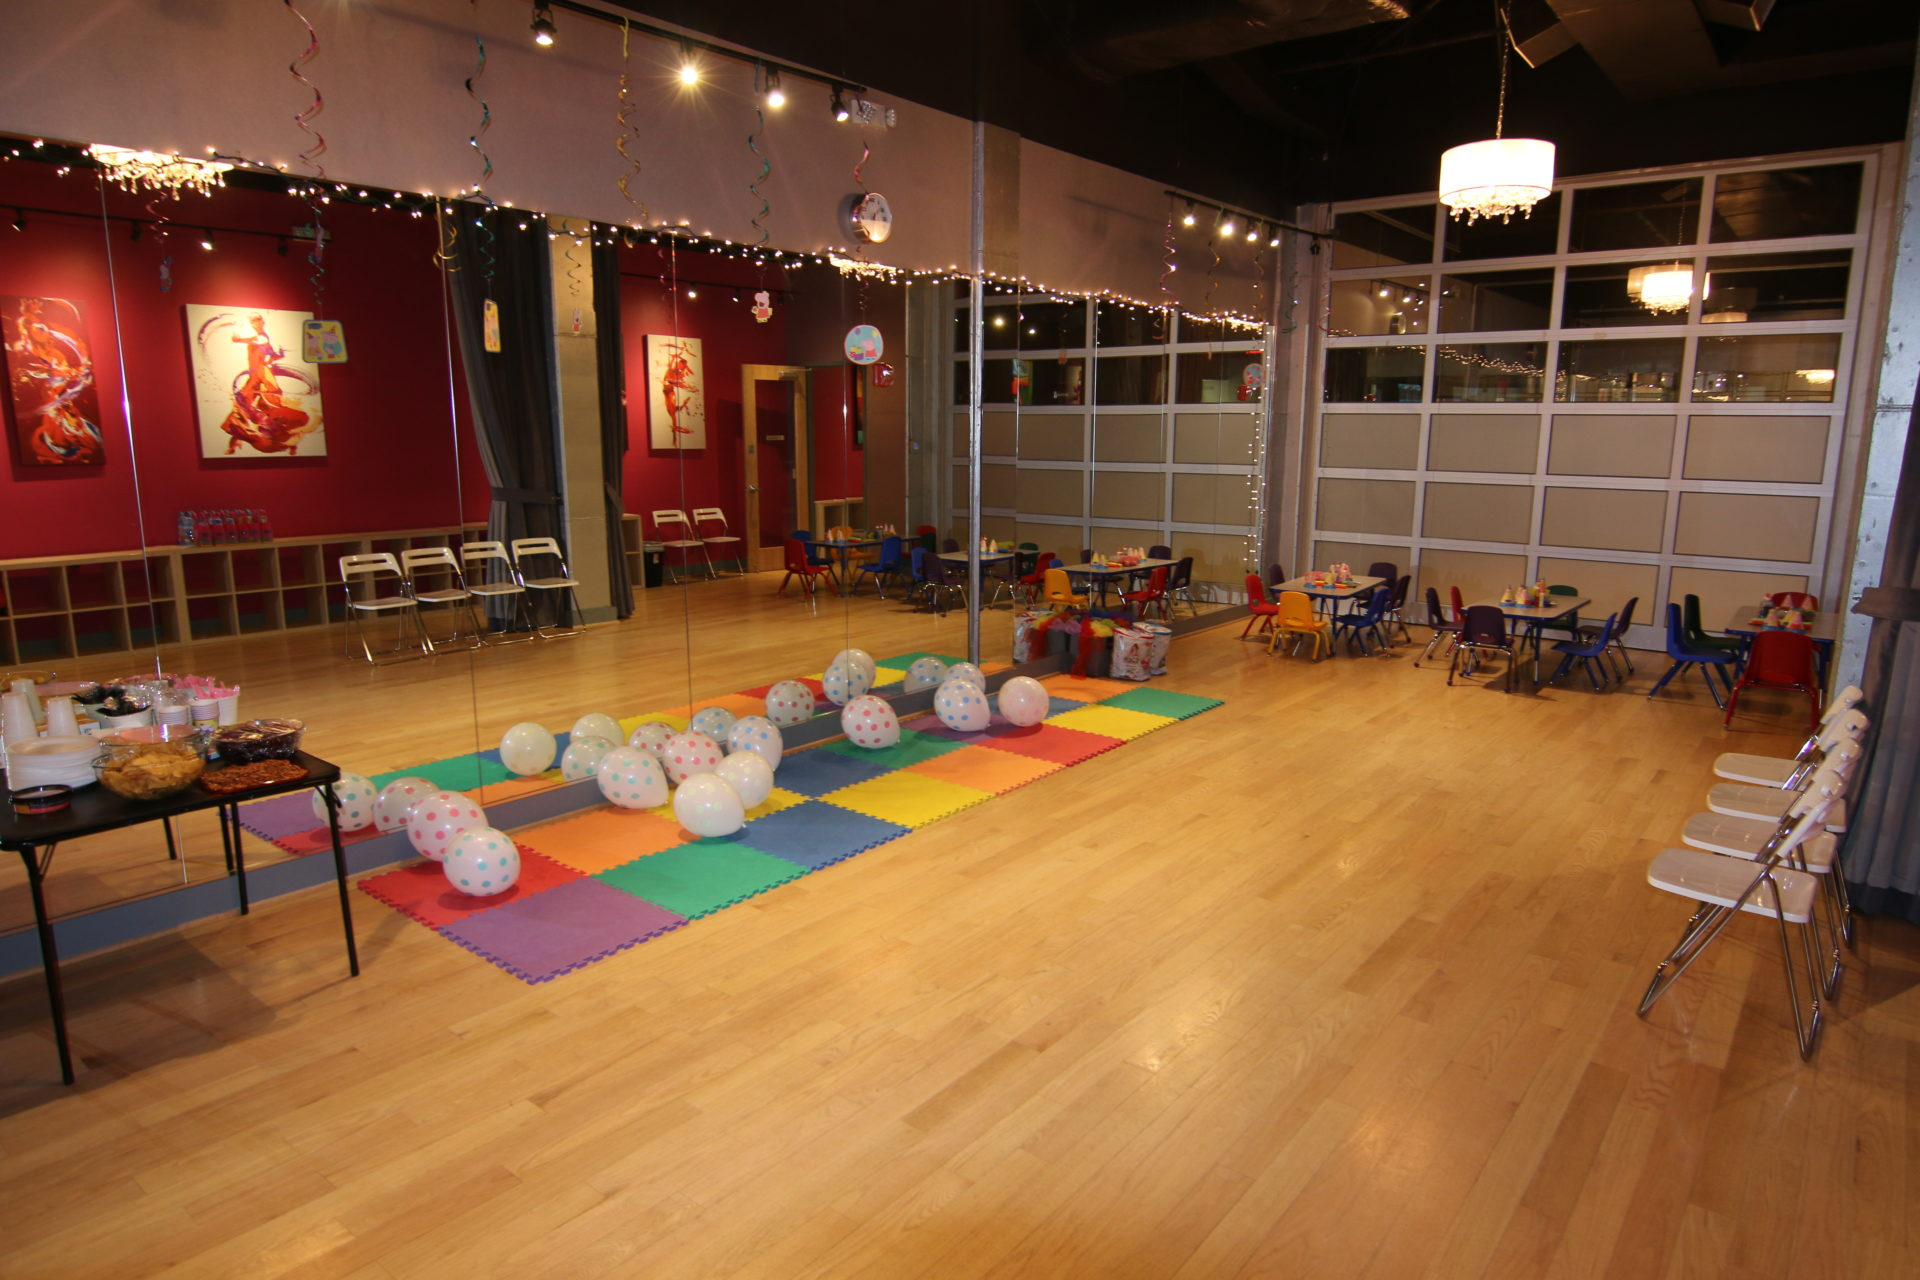 Kids Birthday Parties with dance lessons, arts and crafts, games and more at the Salsa With Silvia Dance Studio